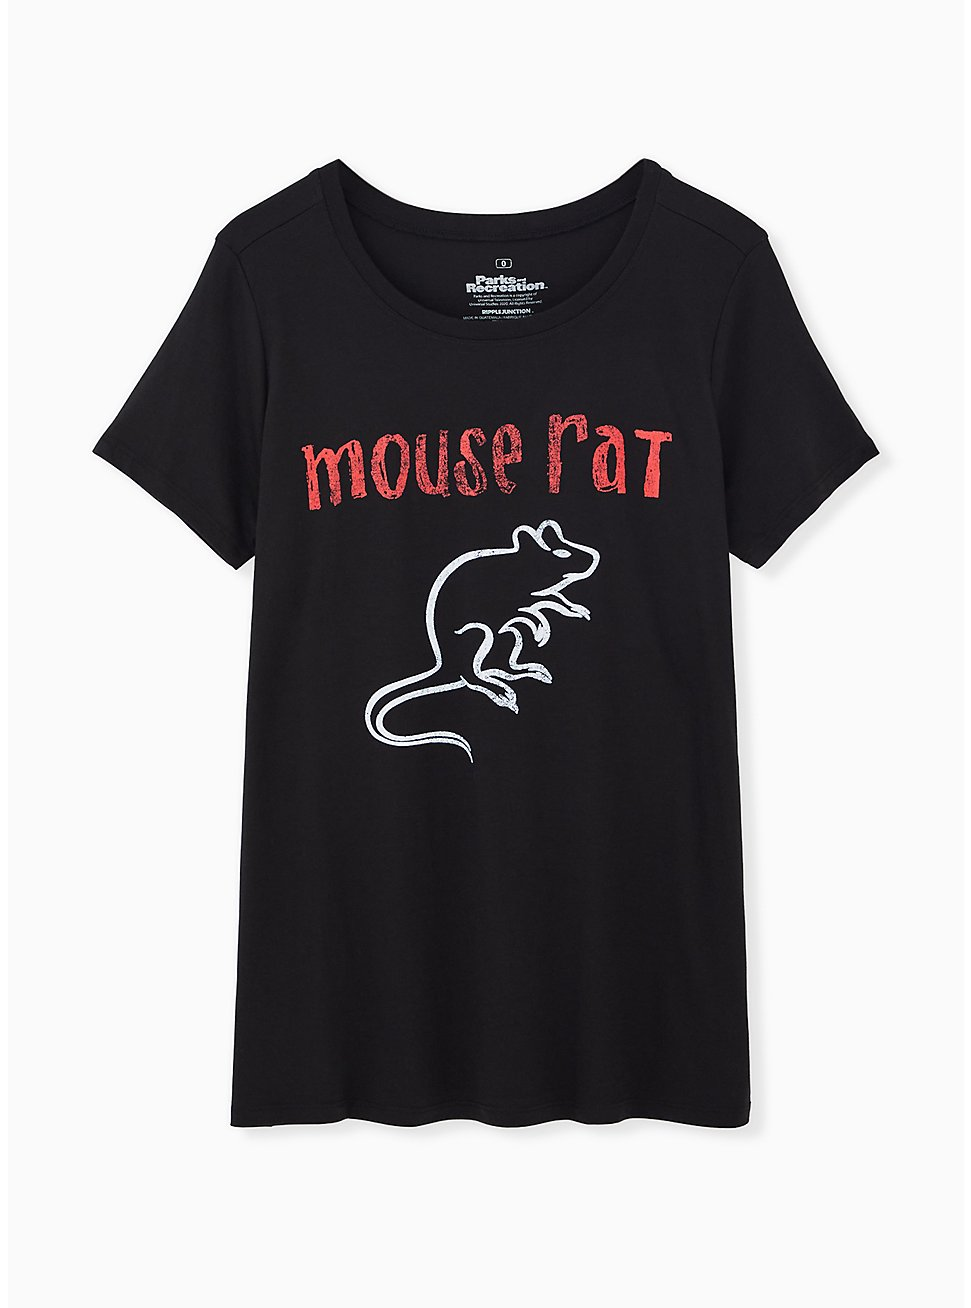 Parks and Recreation Black Slim Fit Mouse Rat Tee, DEEP BLACK, hi-res